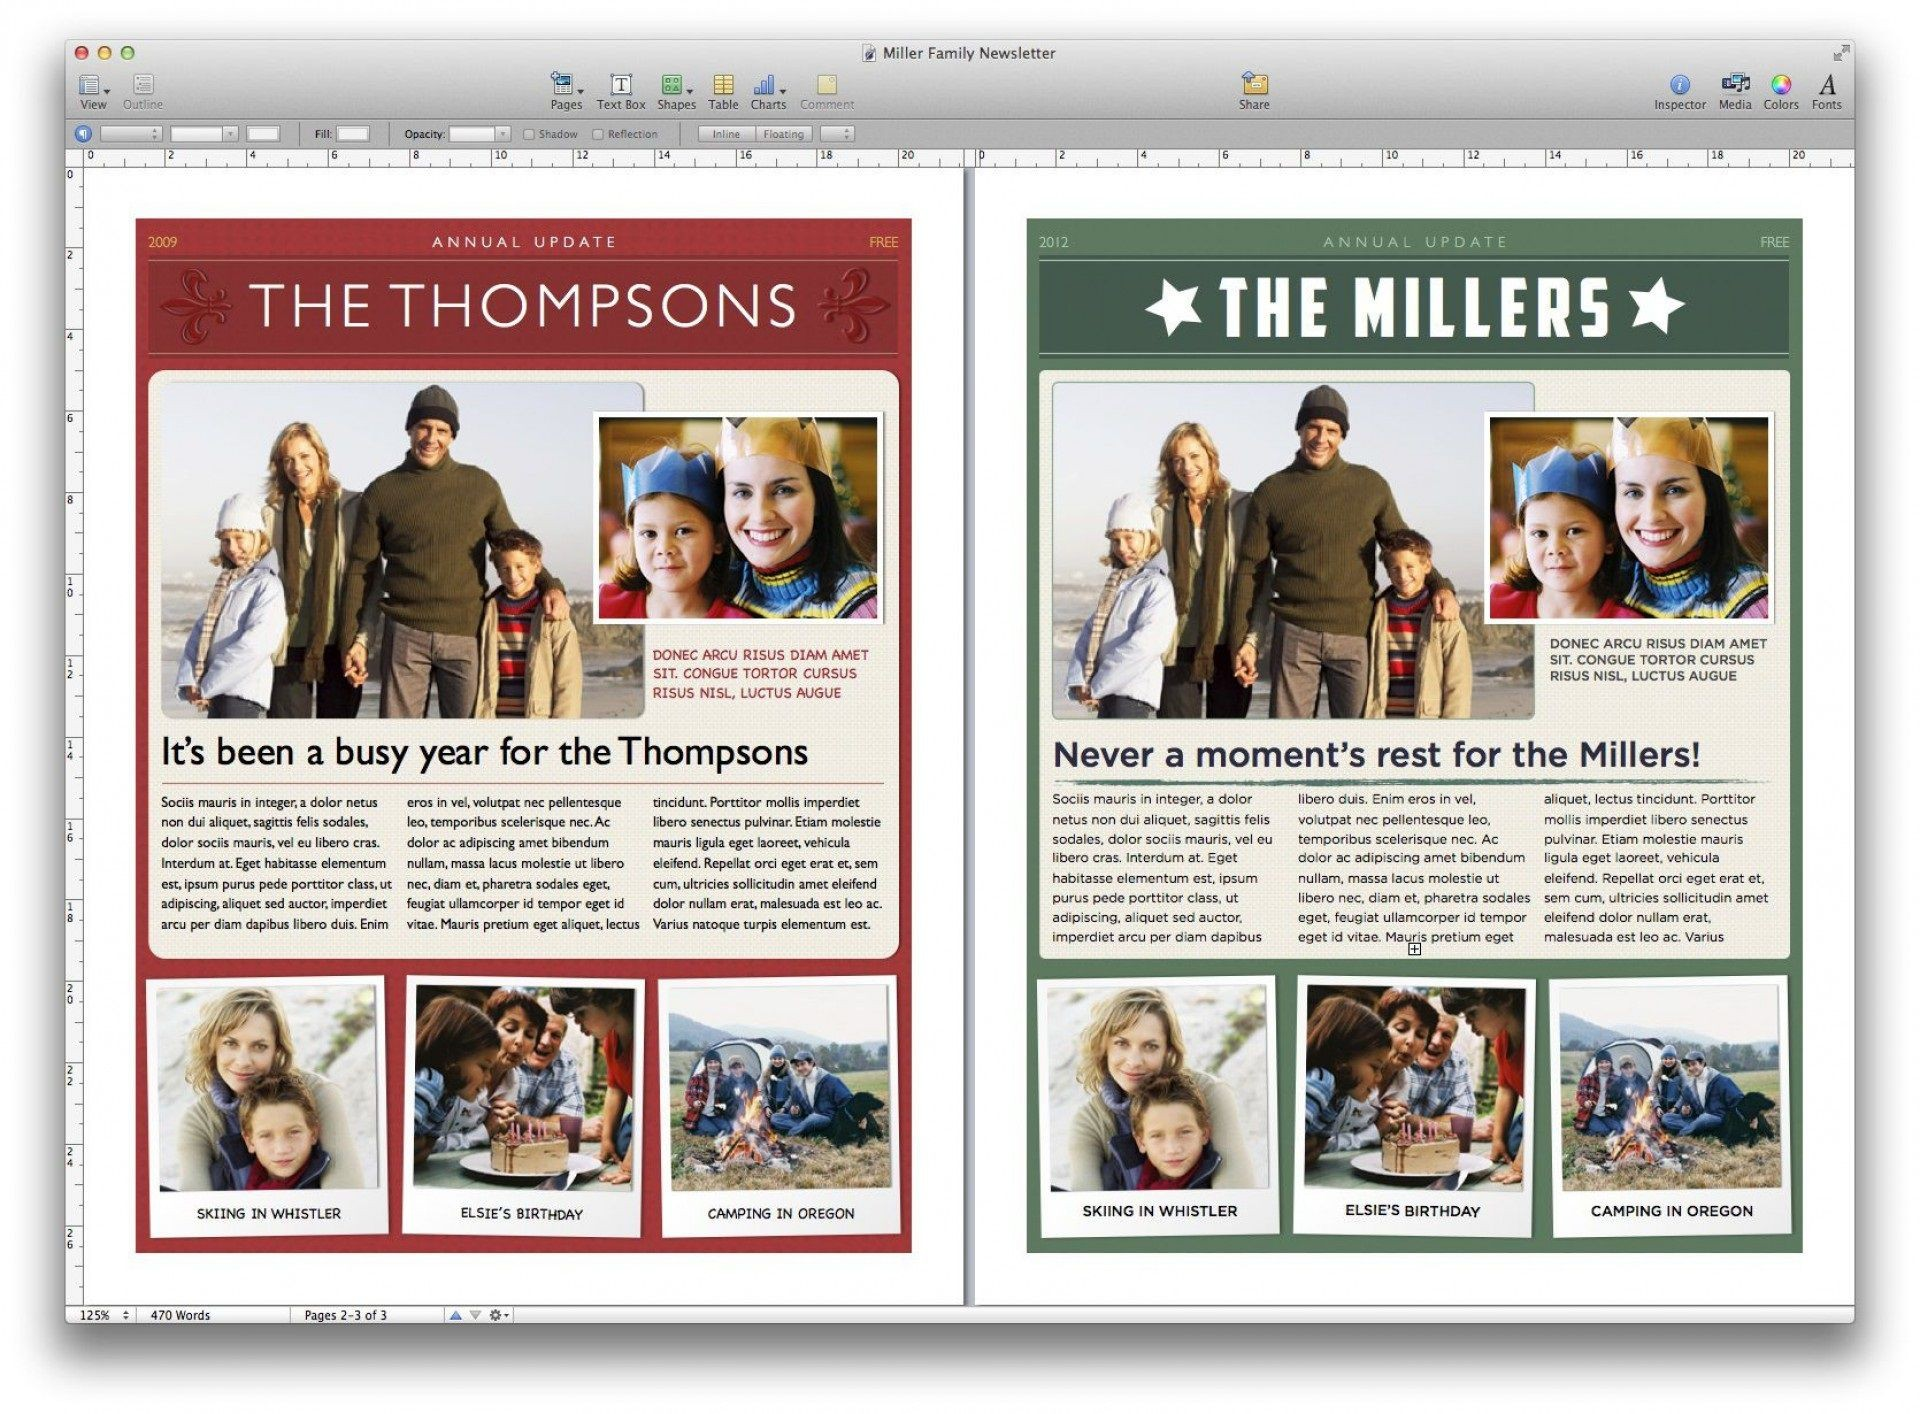 008 Stirring Free Christma Newsletter Template Microsoft Word Concept 1920